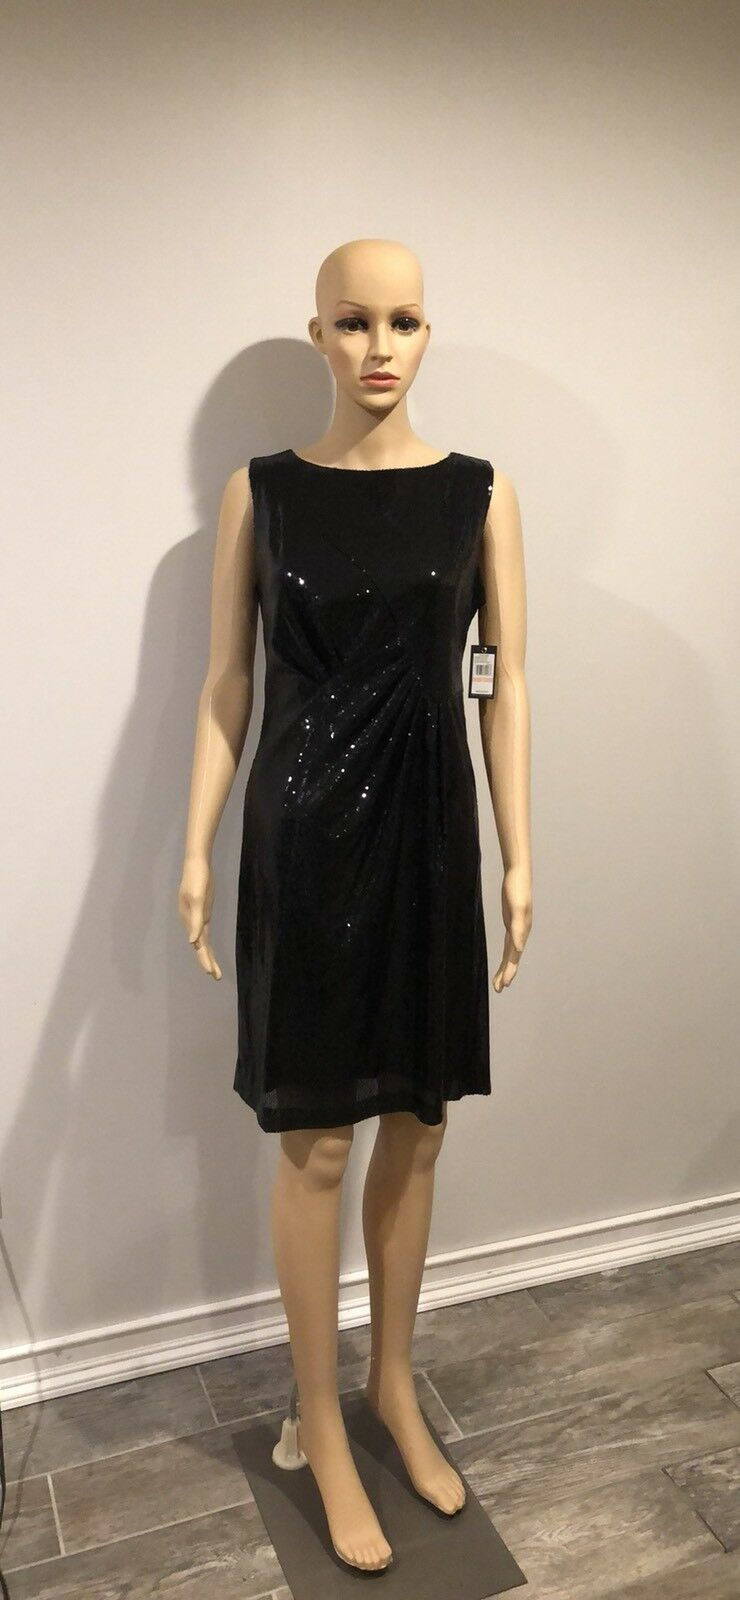 Vince Camuto Sequins Dress Größe 6